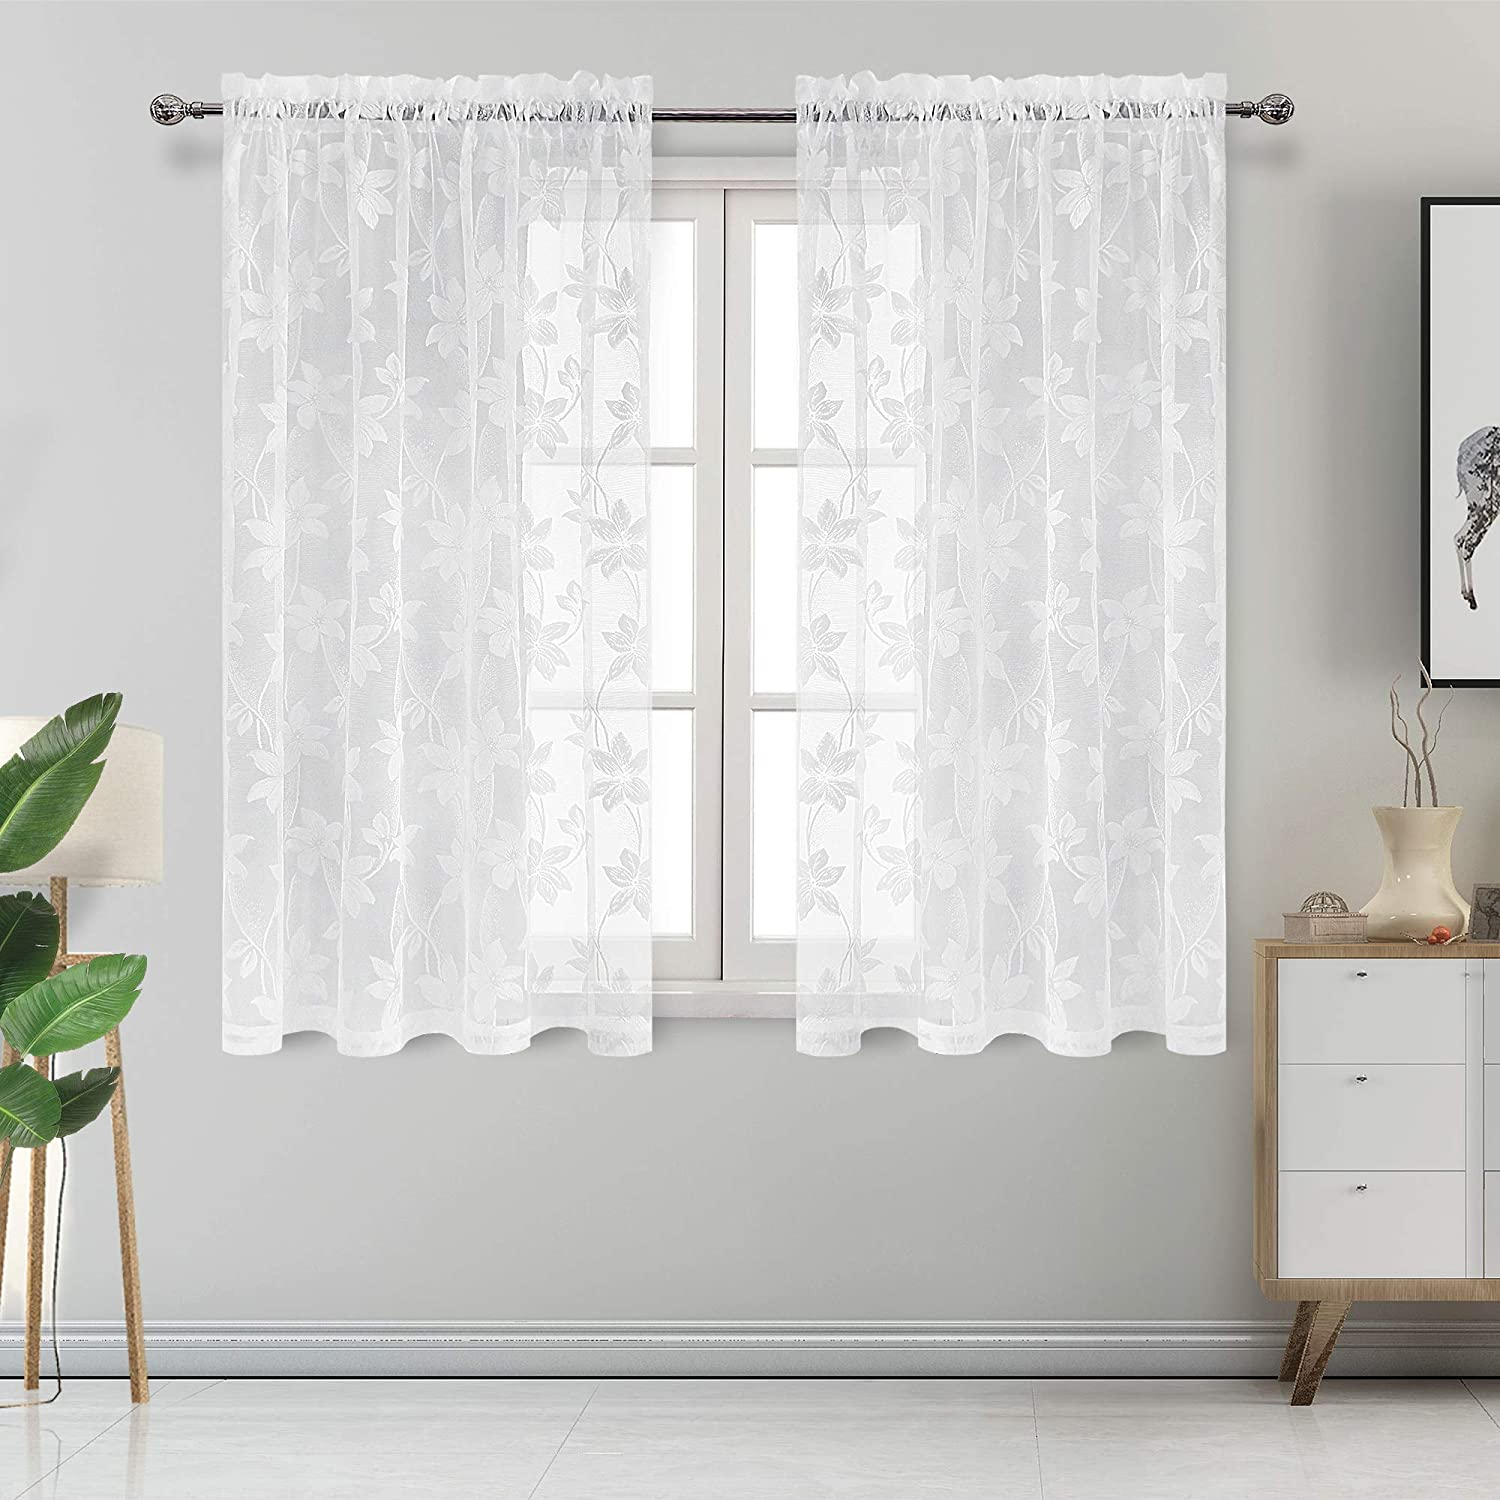 DWCN Floral Lace Sheer Curtains - Rod Pocket Window Voile Sheer Drapes for Bedroom Kitchen Short Curtains 52 x 45 inch Length, Set of 2 White Curtain Panels